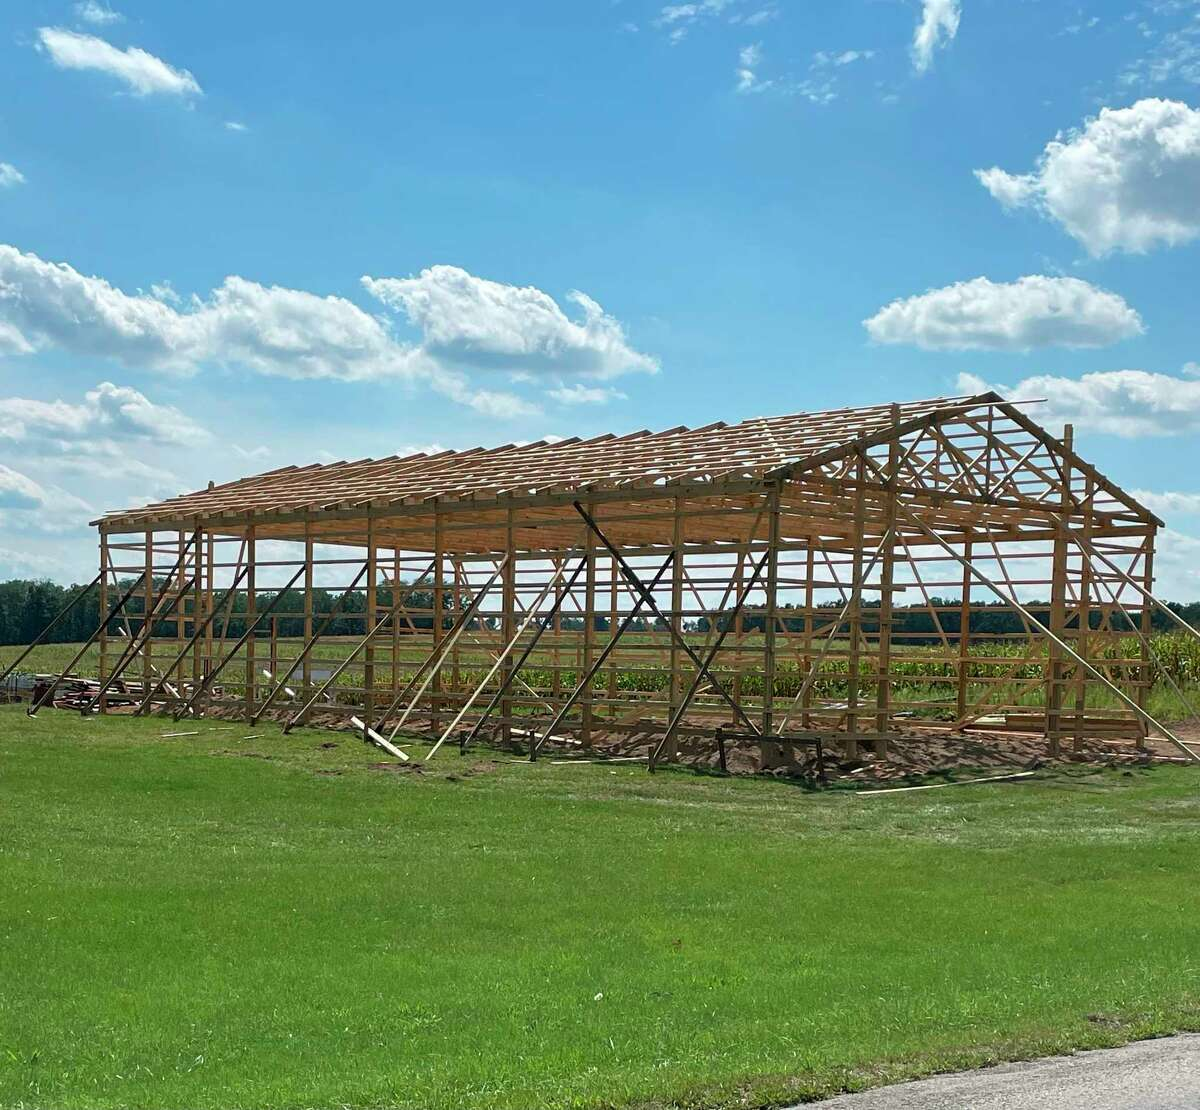 Men from the community gathered this week to work on Dustin's pole barn after the recent storm damage. (Courtesy photo)